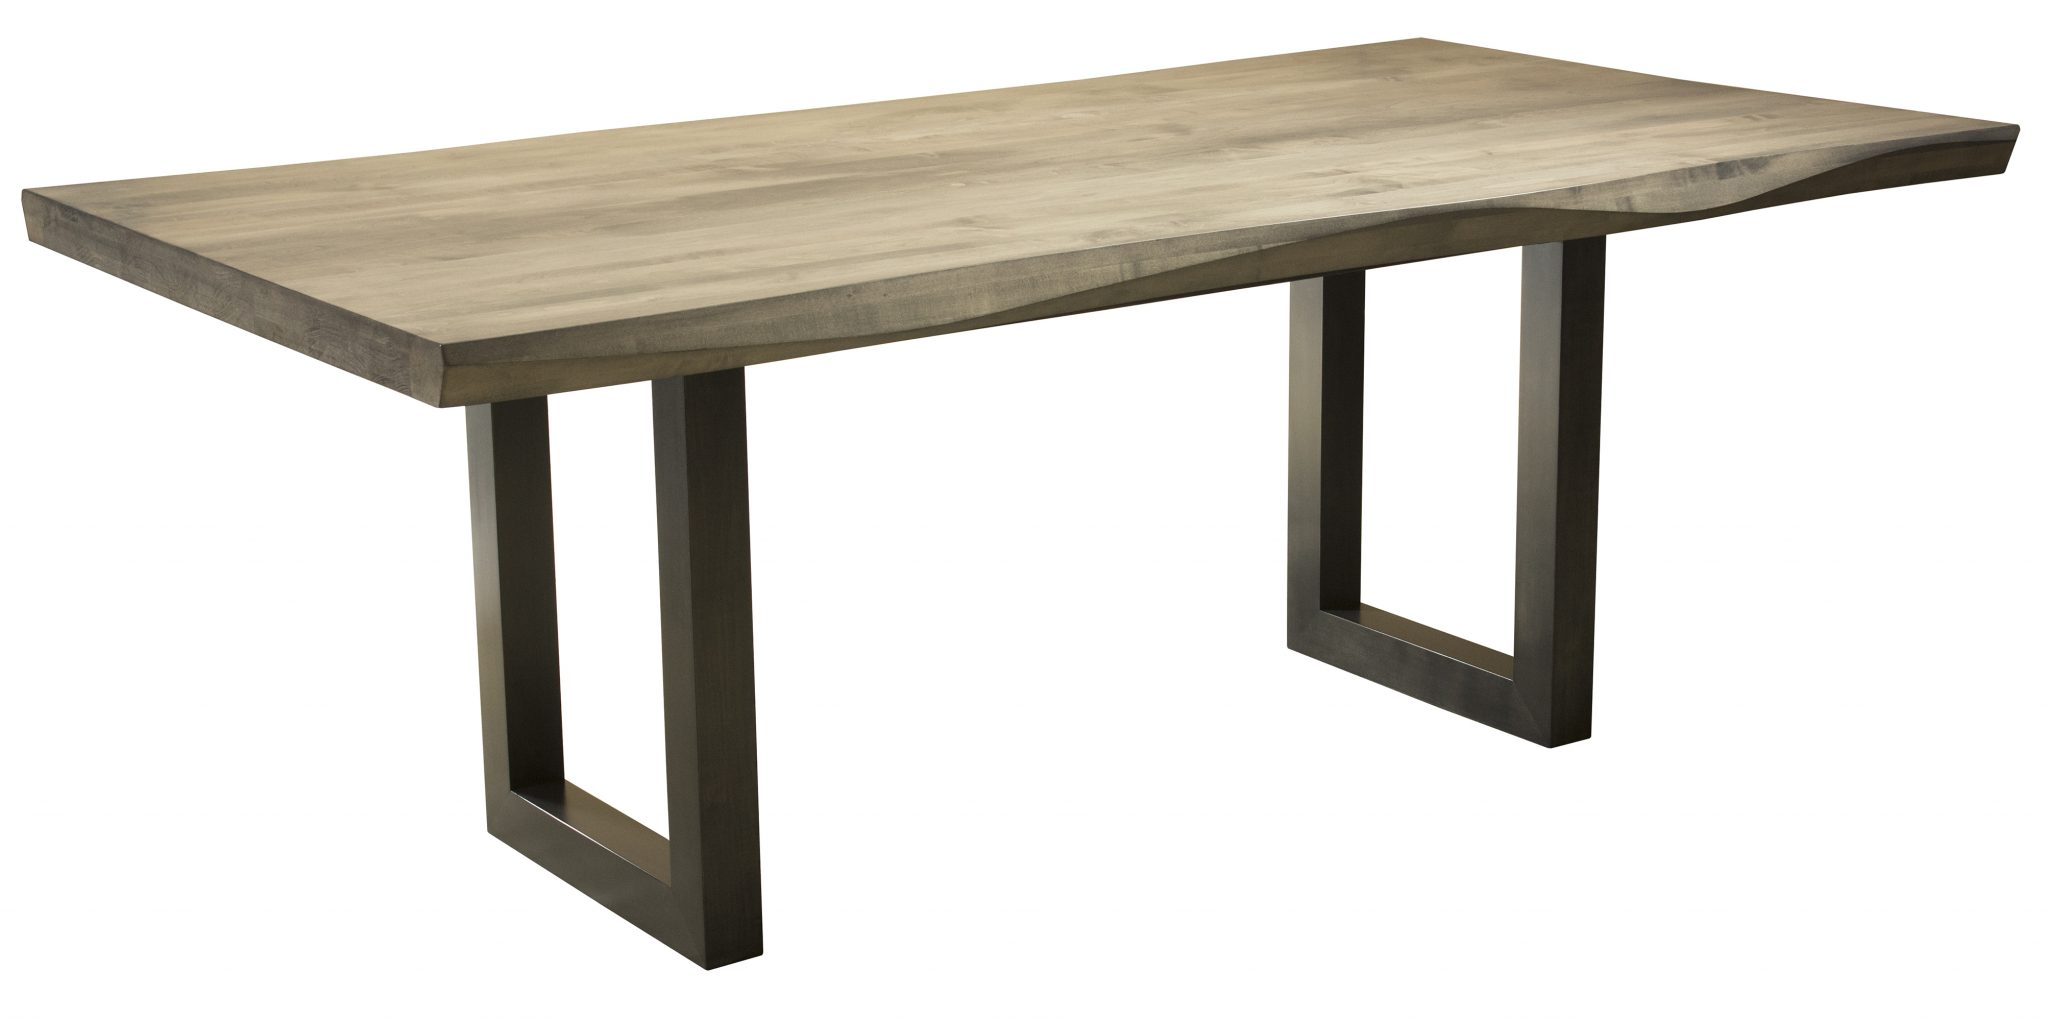 Emerson Sculpted Edge Dining Table